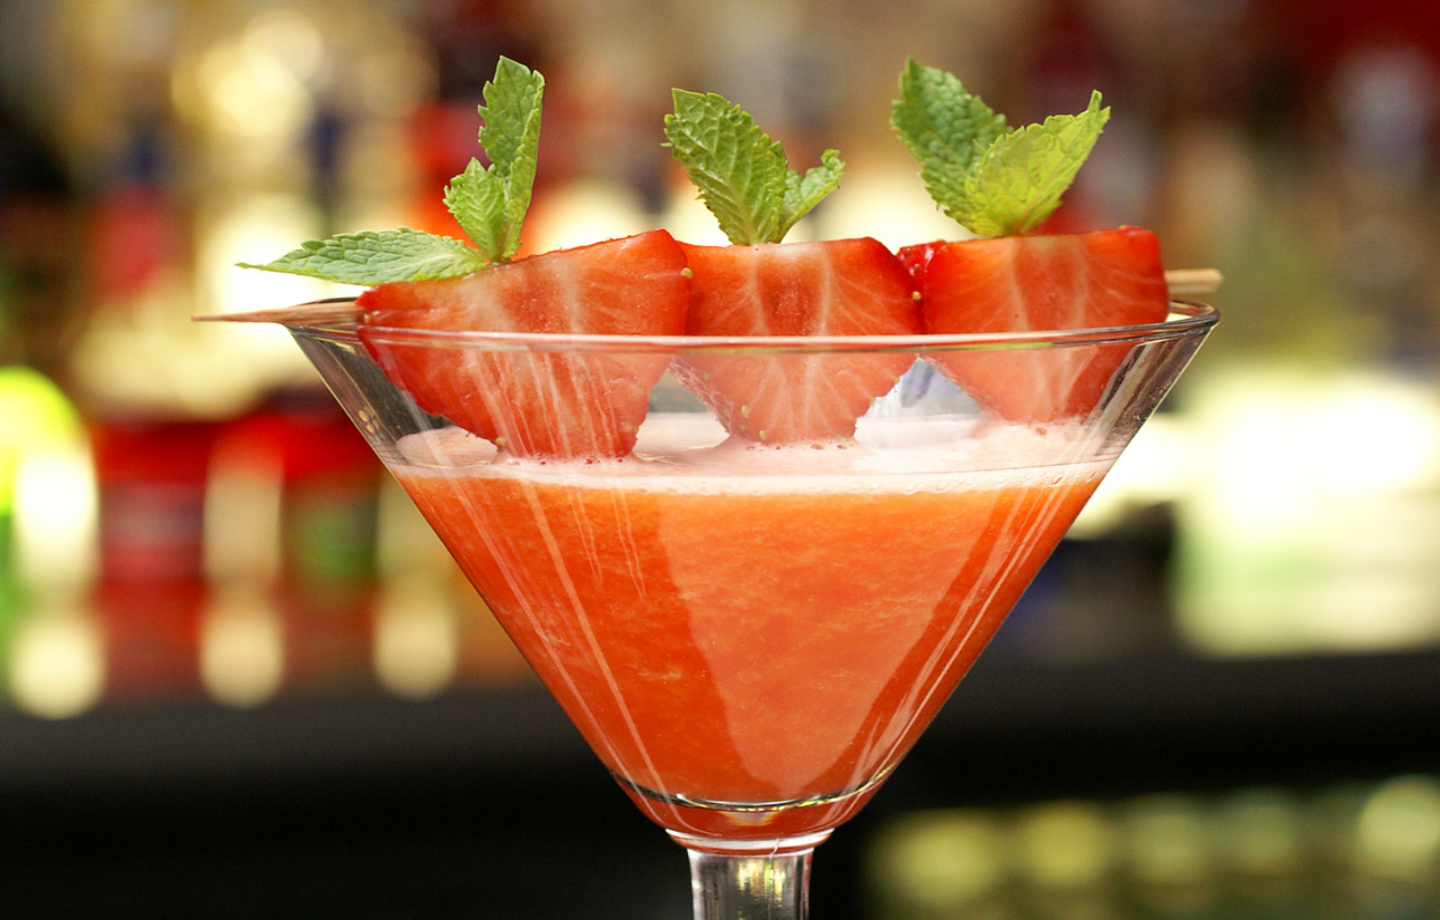 The classic Strawberry Daiquiri